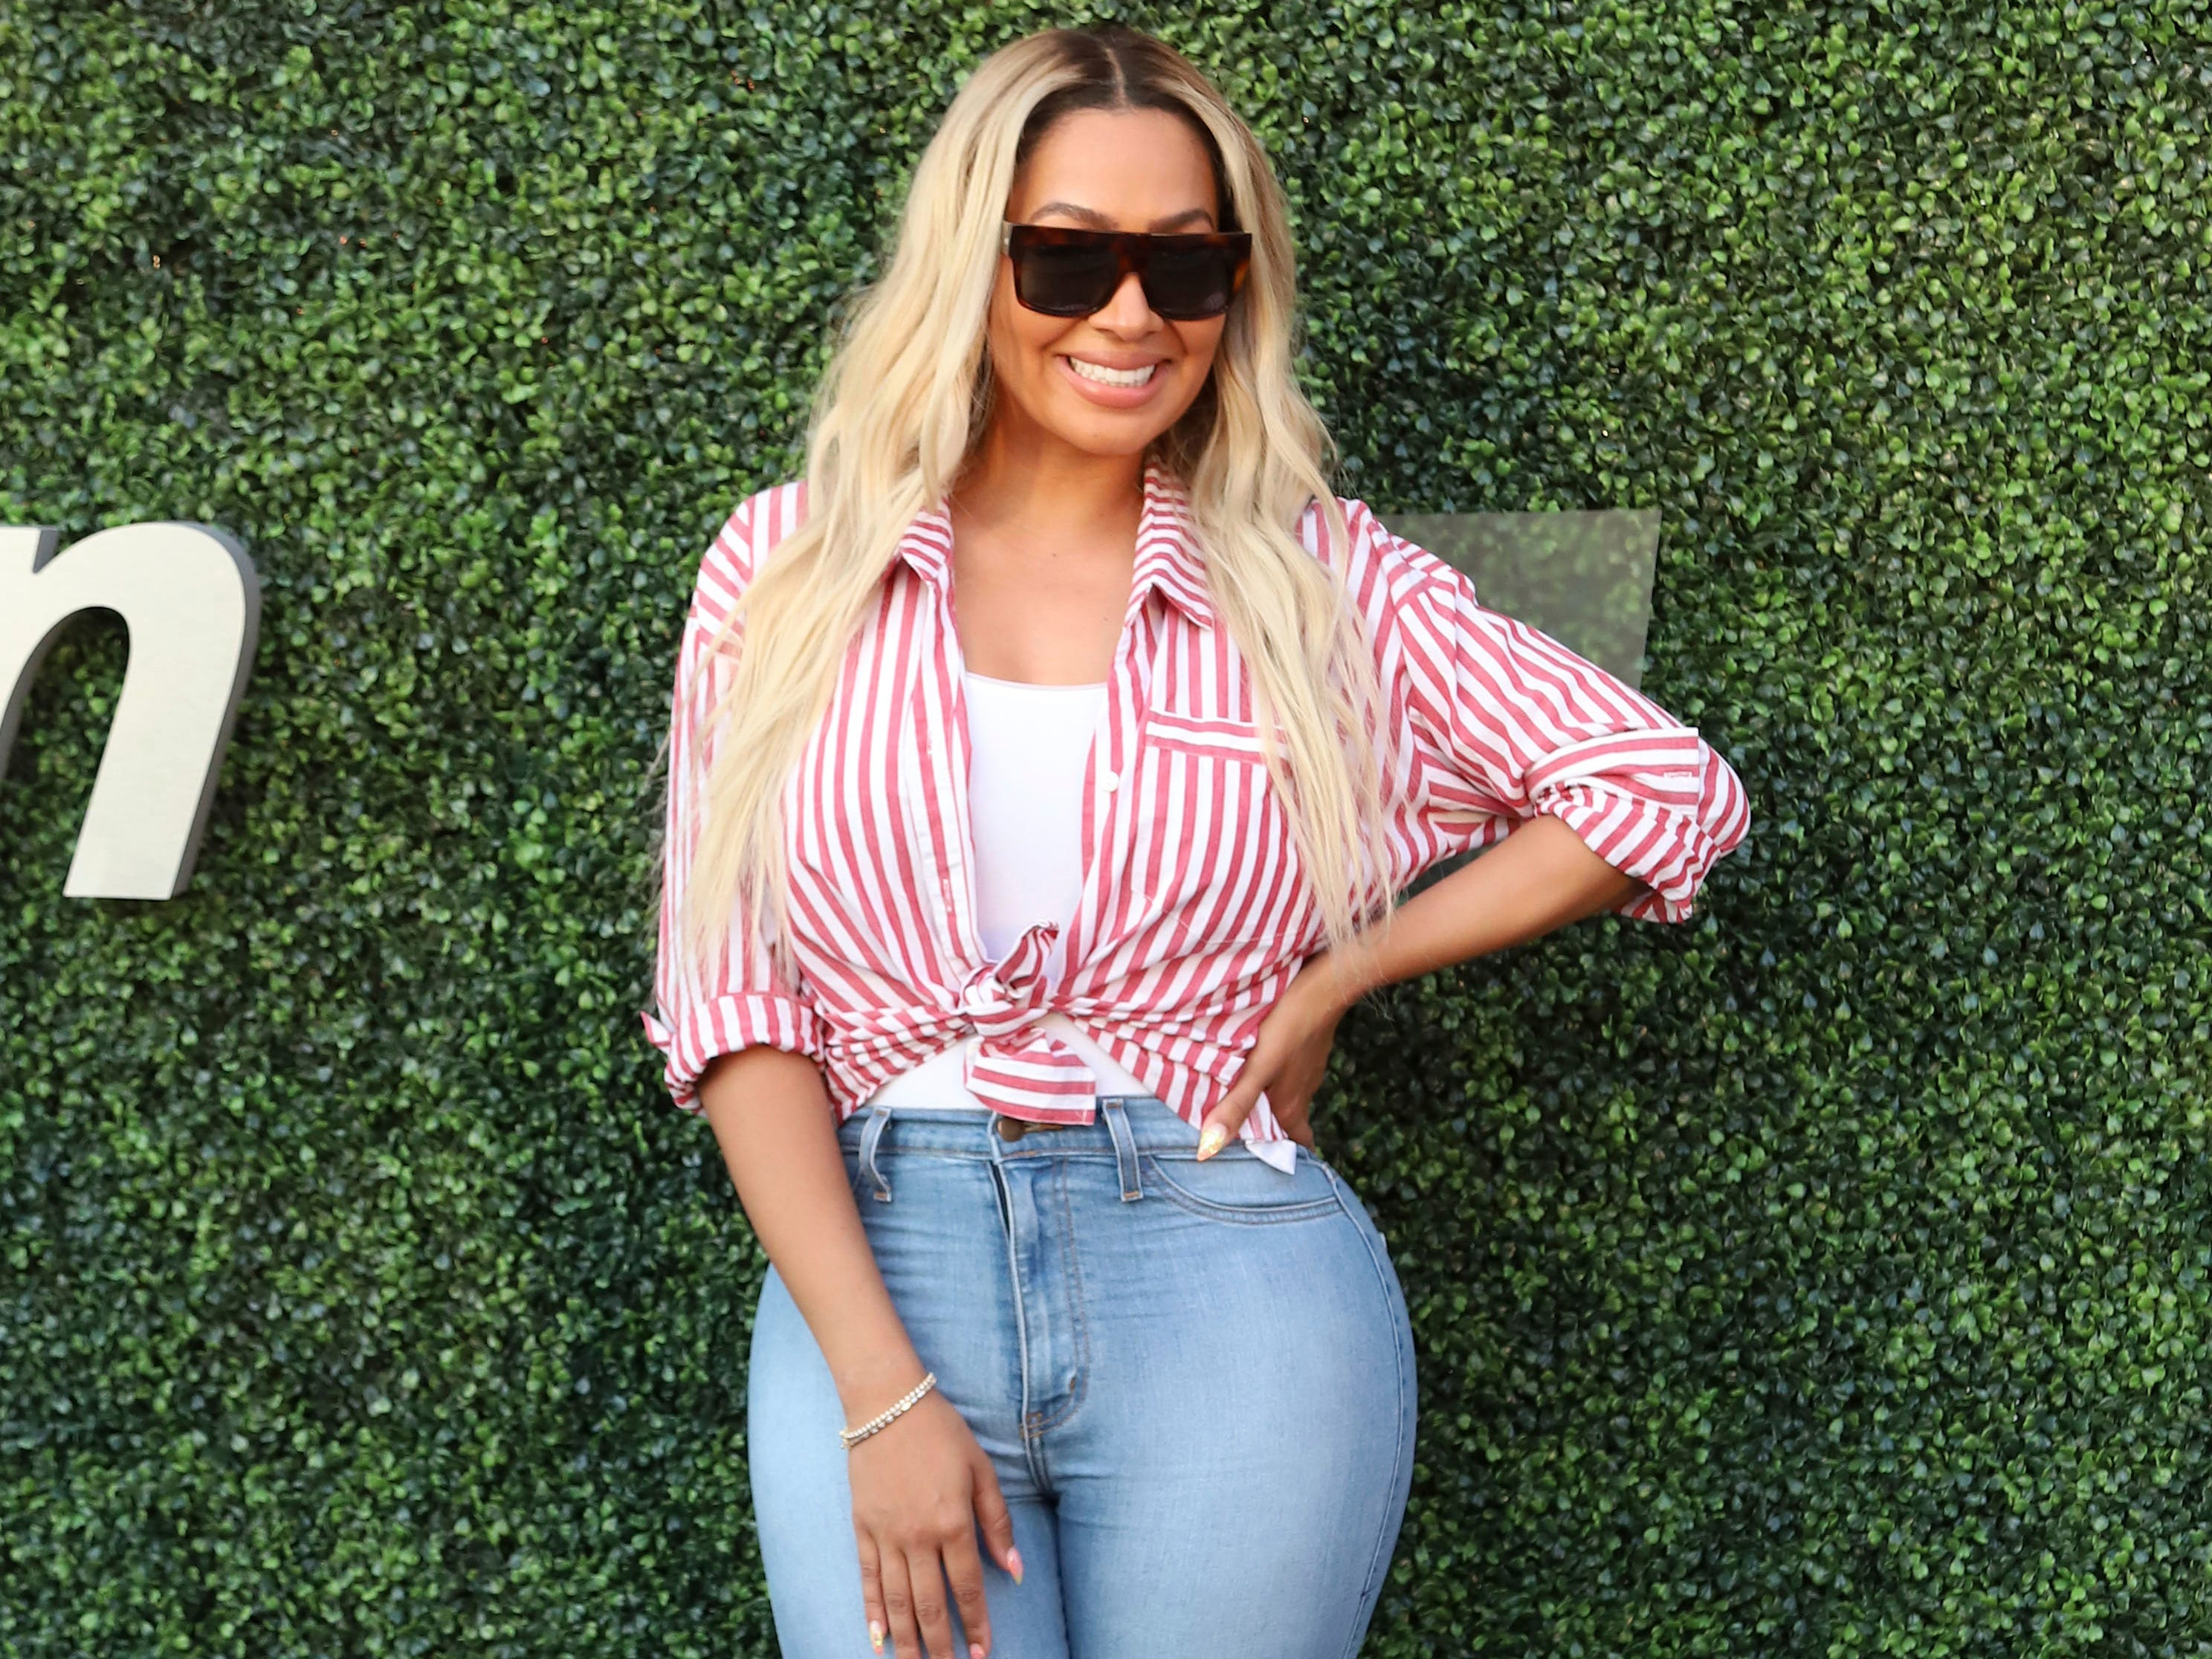 La La Anthony attends the quarterfinals of the US Open at the USTA Billie Jean King National Tennis Center.